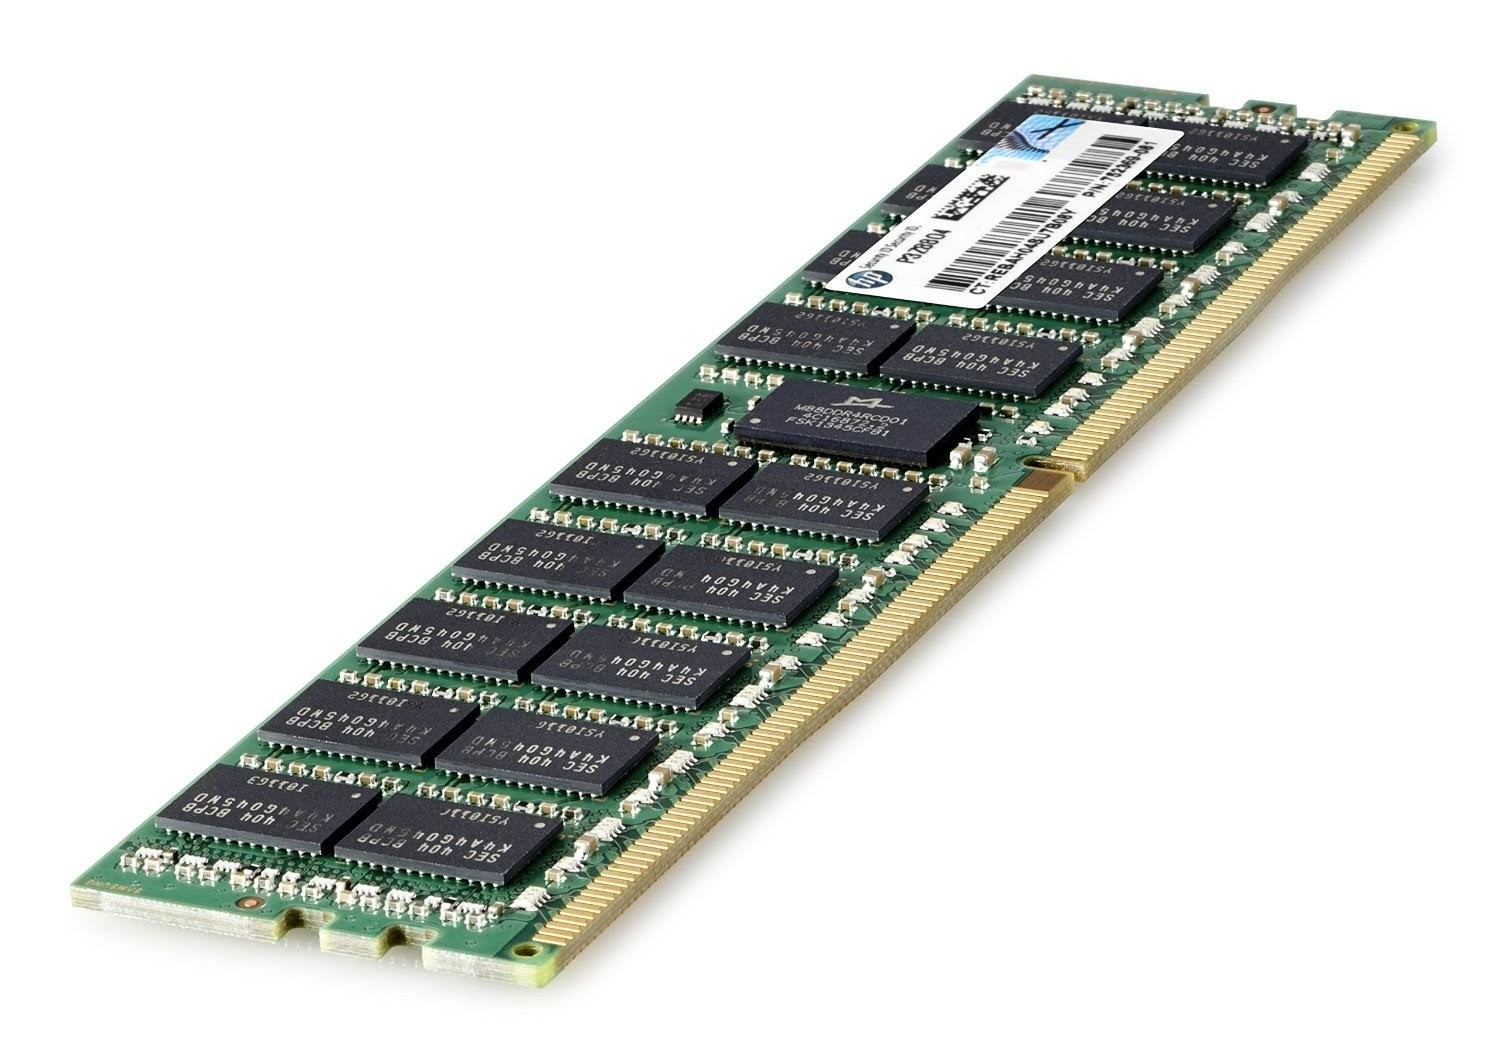 HPE 64GB (1x64GB) 4Rx4 DDR4-2666 Load Reduced Smart Memory Image